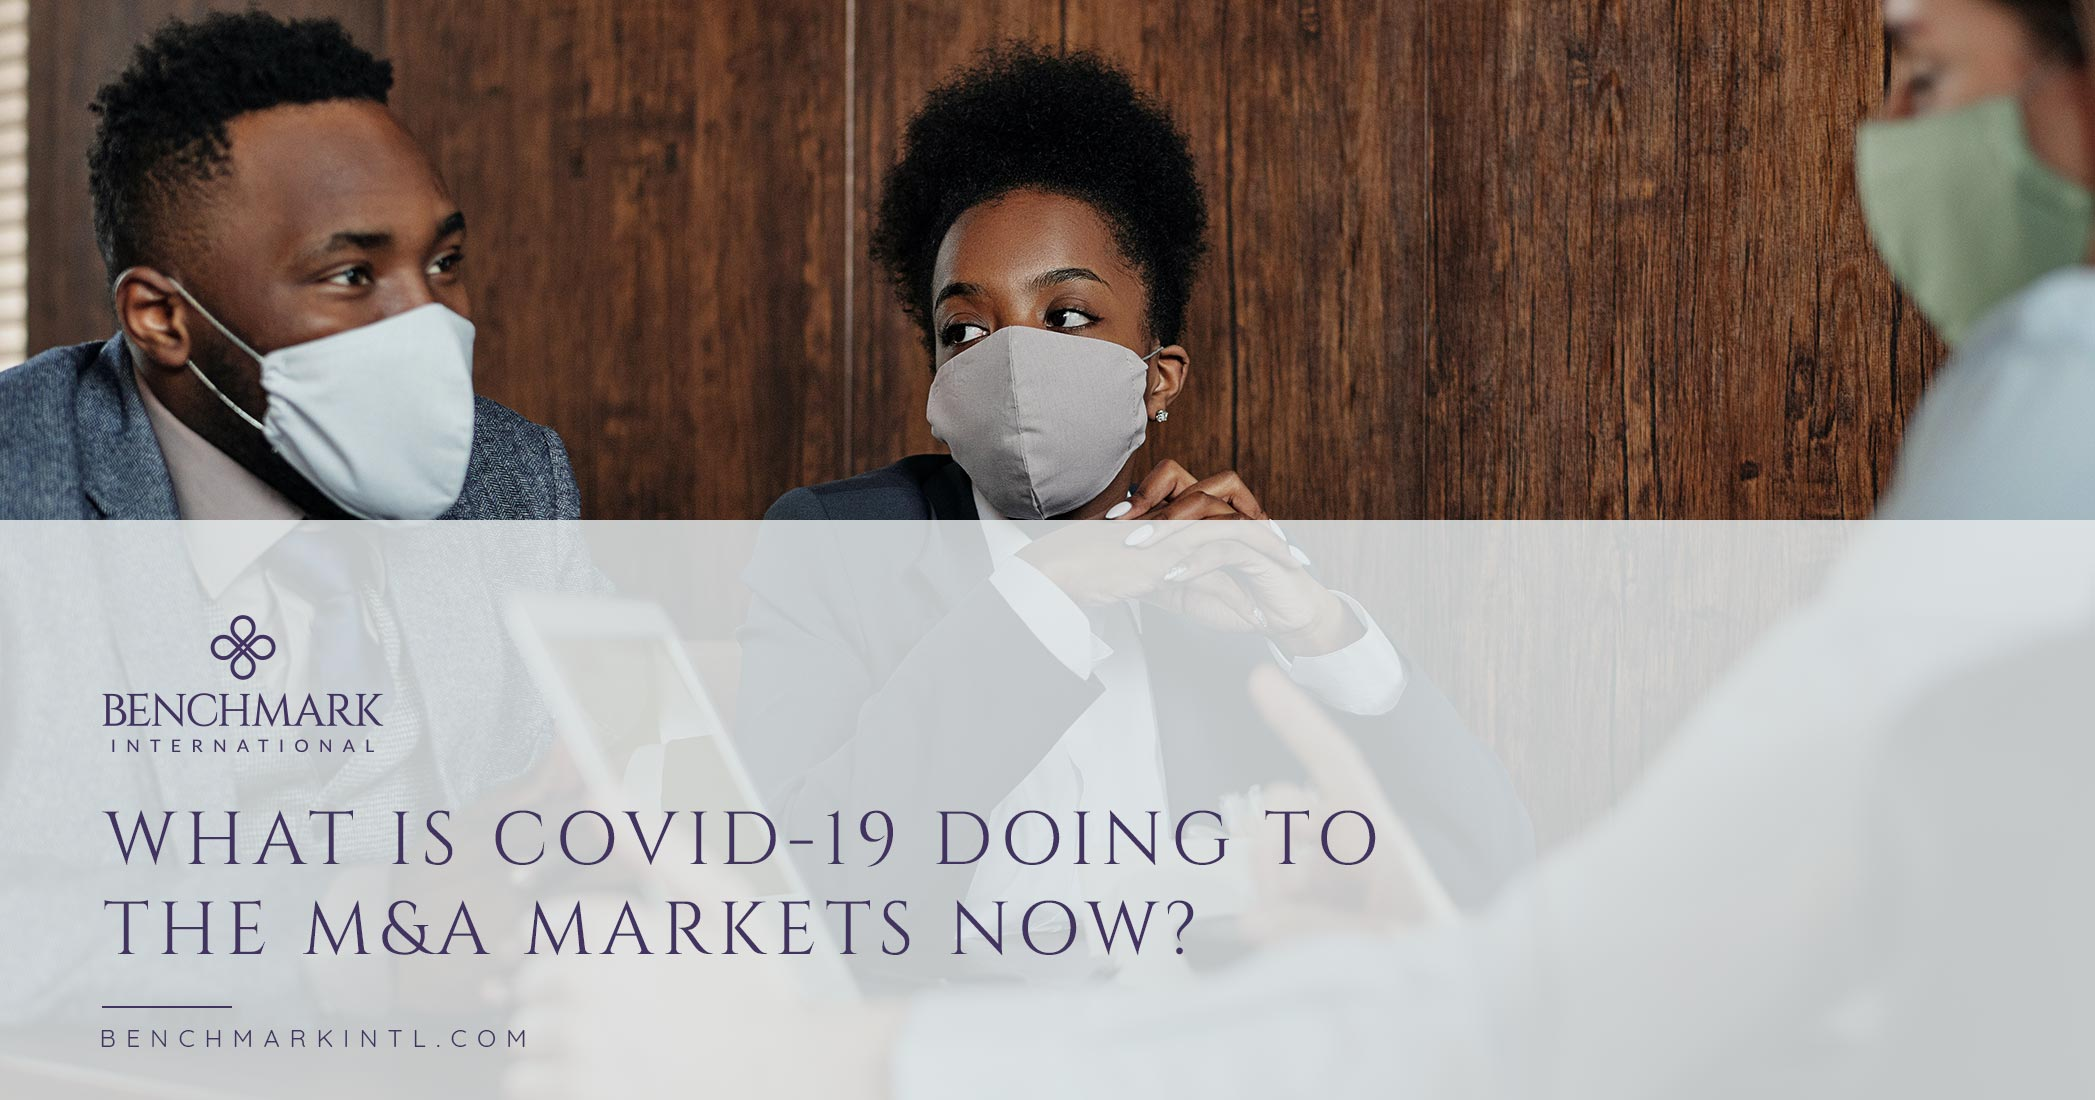 What is COVID-19 Doing to the M&A Markets Now?